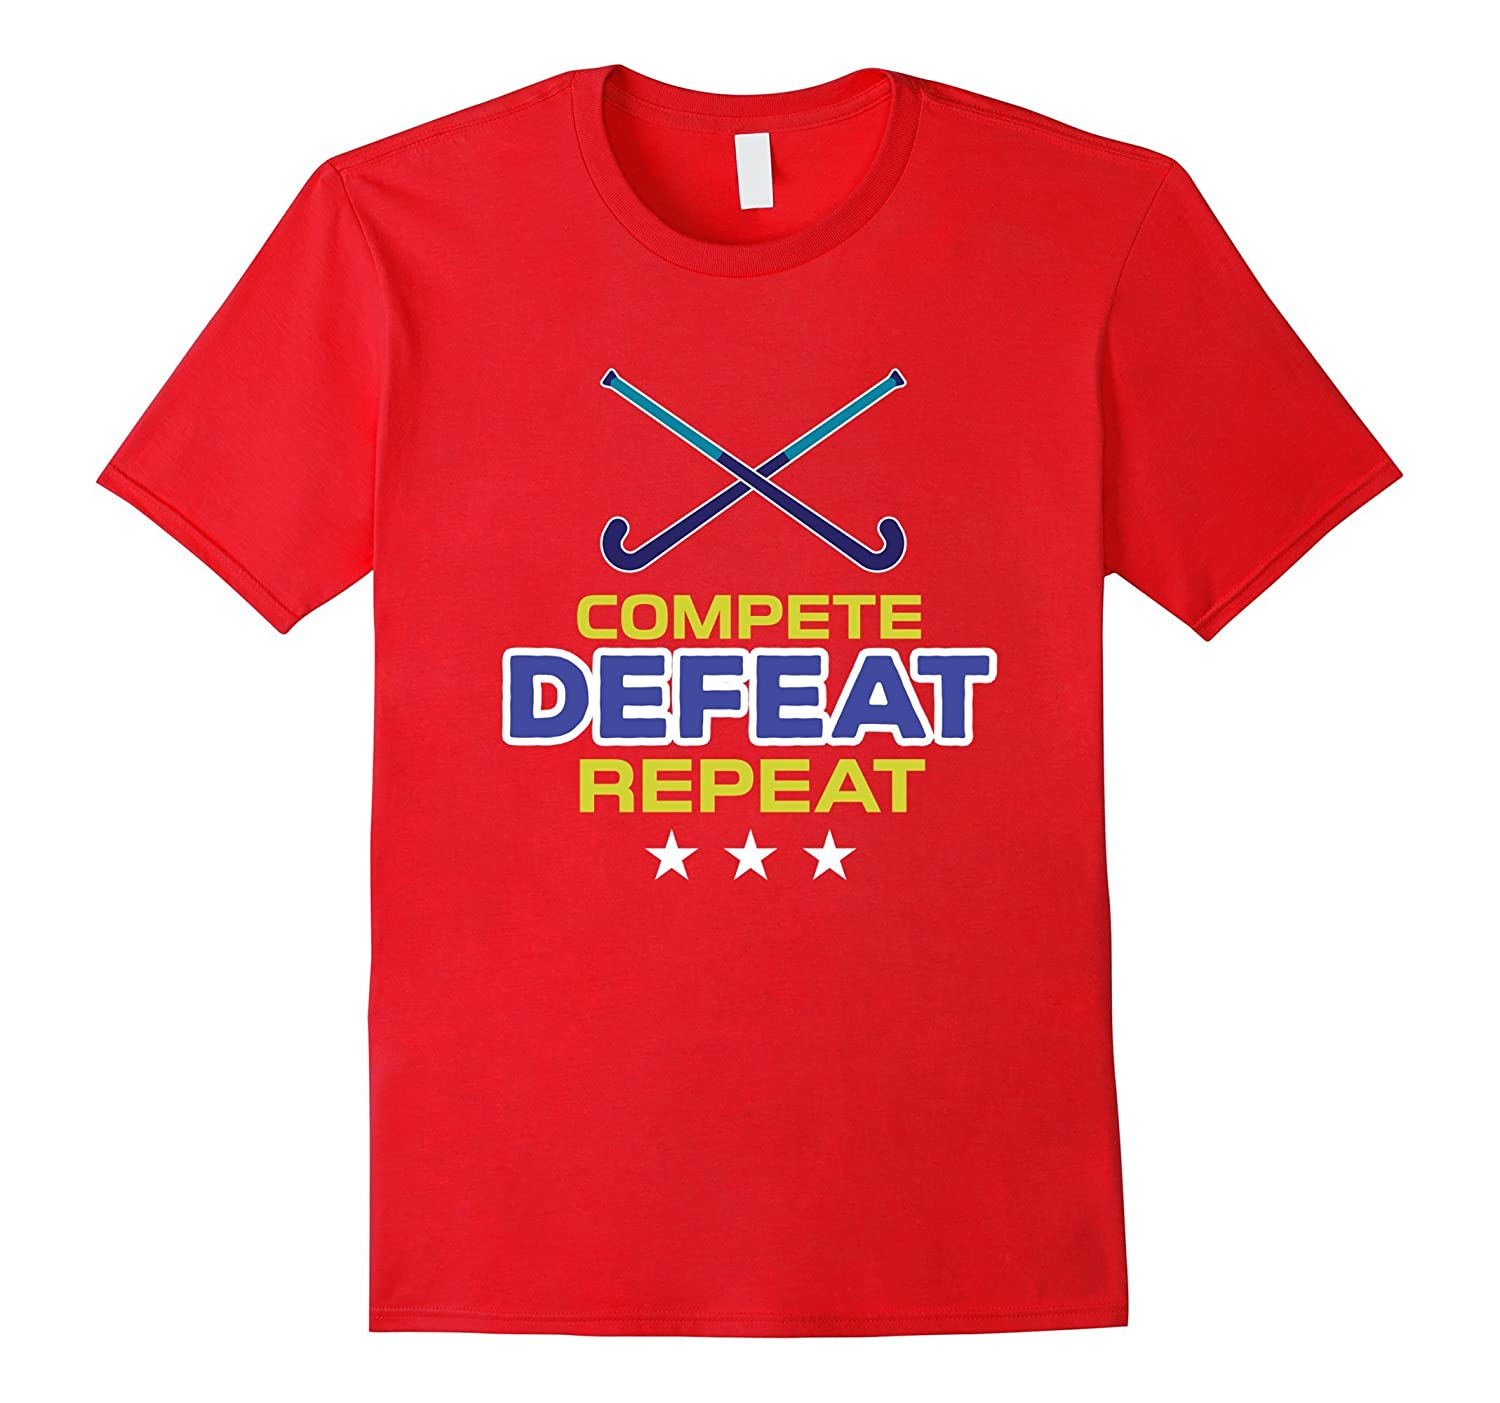 Field Hockey Clothing T-Shirt Gifts - Compete Defeat Repeat-FL